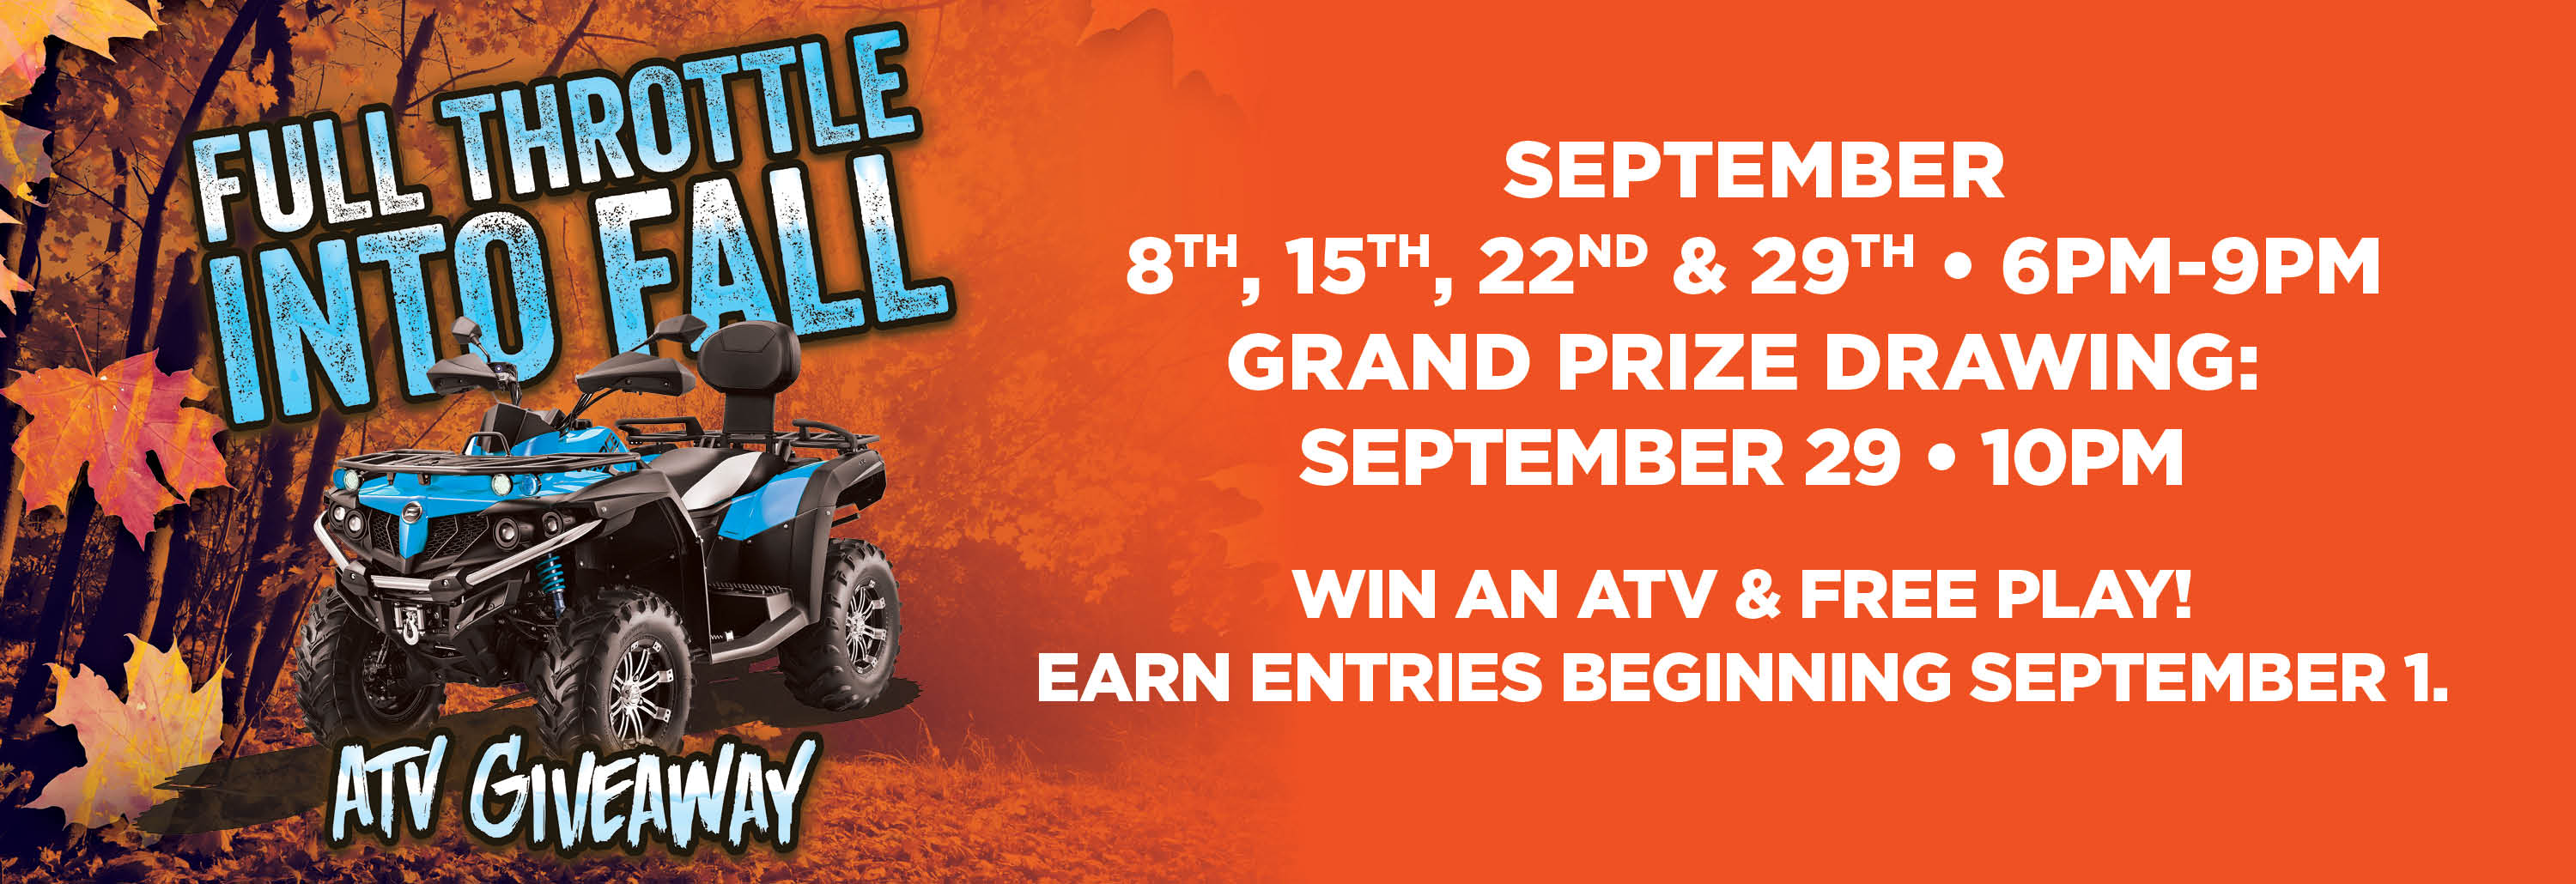 LLOWA1317 Full Throttle into Fall ATV Giveaway Digital 3000x1030 MECH.jpg